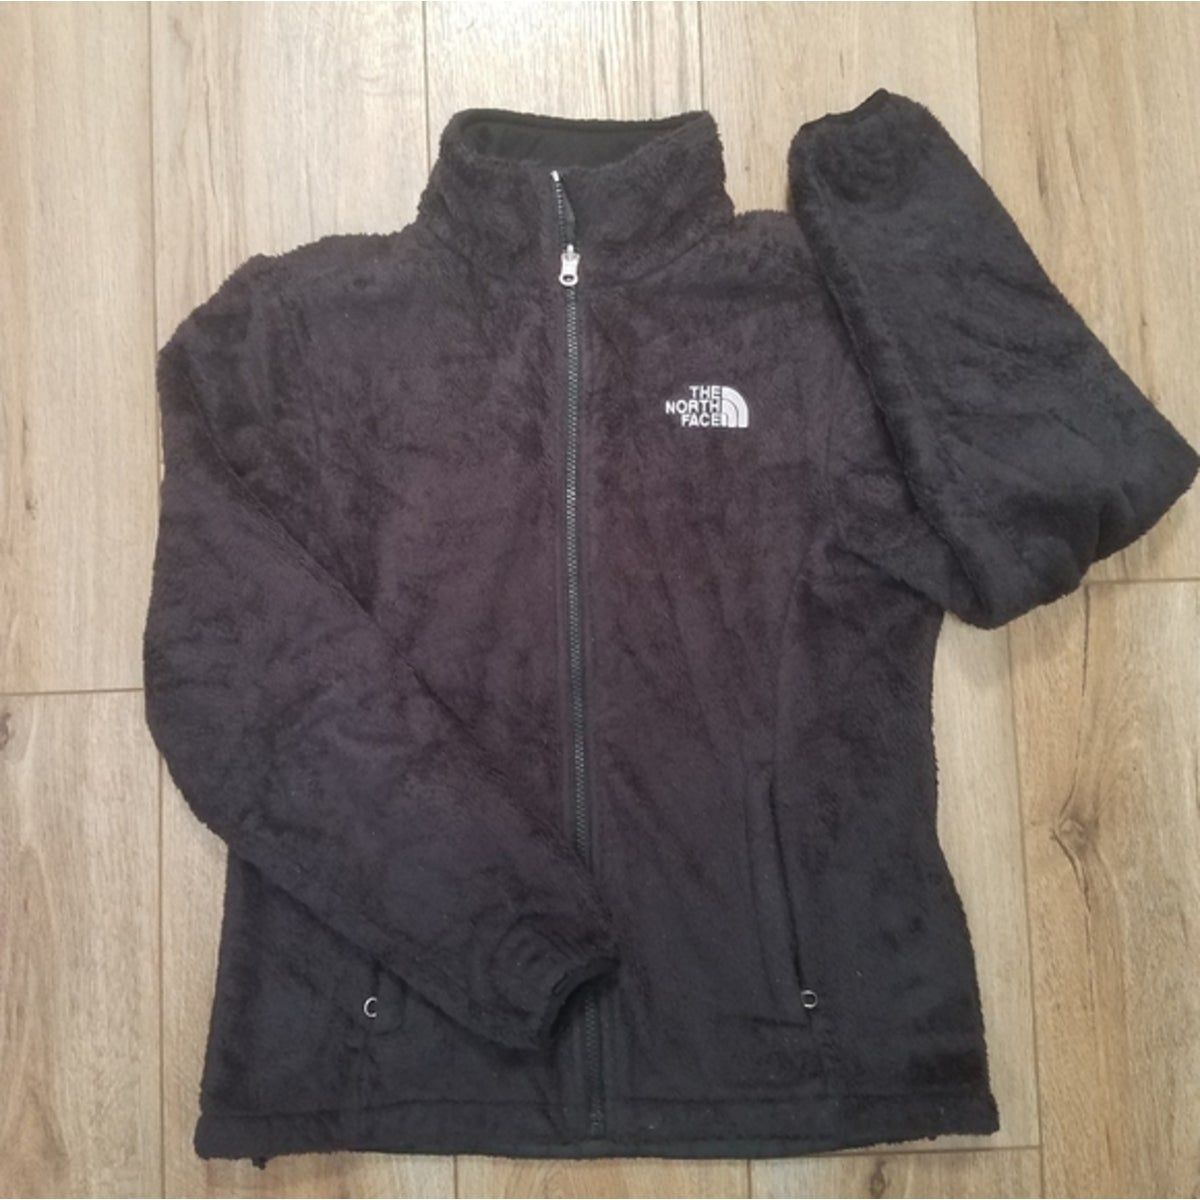 The North Face Black Osito Jacket Fleece Good Pre Owned Condition Flaws Some Pilling And Wear Around Cuffs E North Face Fleece Jacket Jackets Black North Face [ 1200 x 1200 Pixel ]